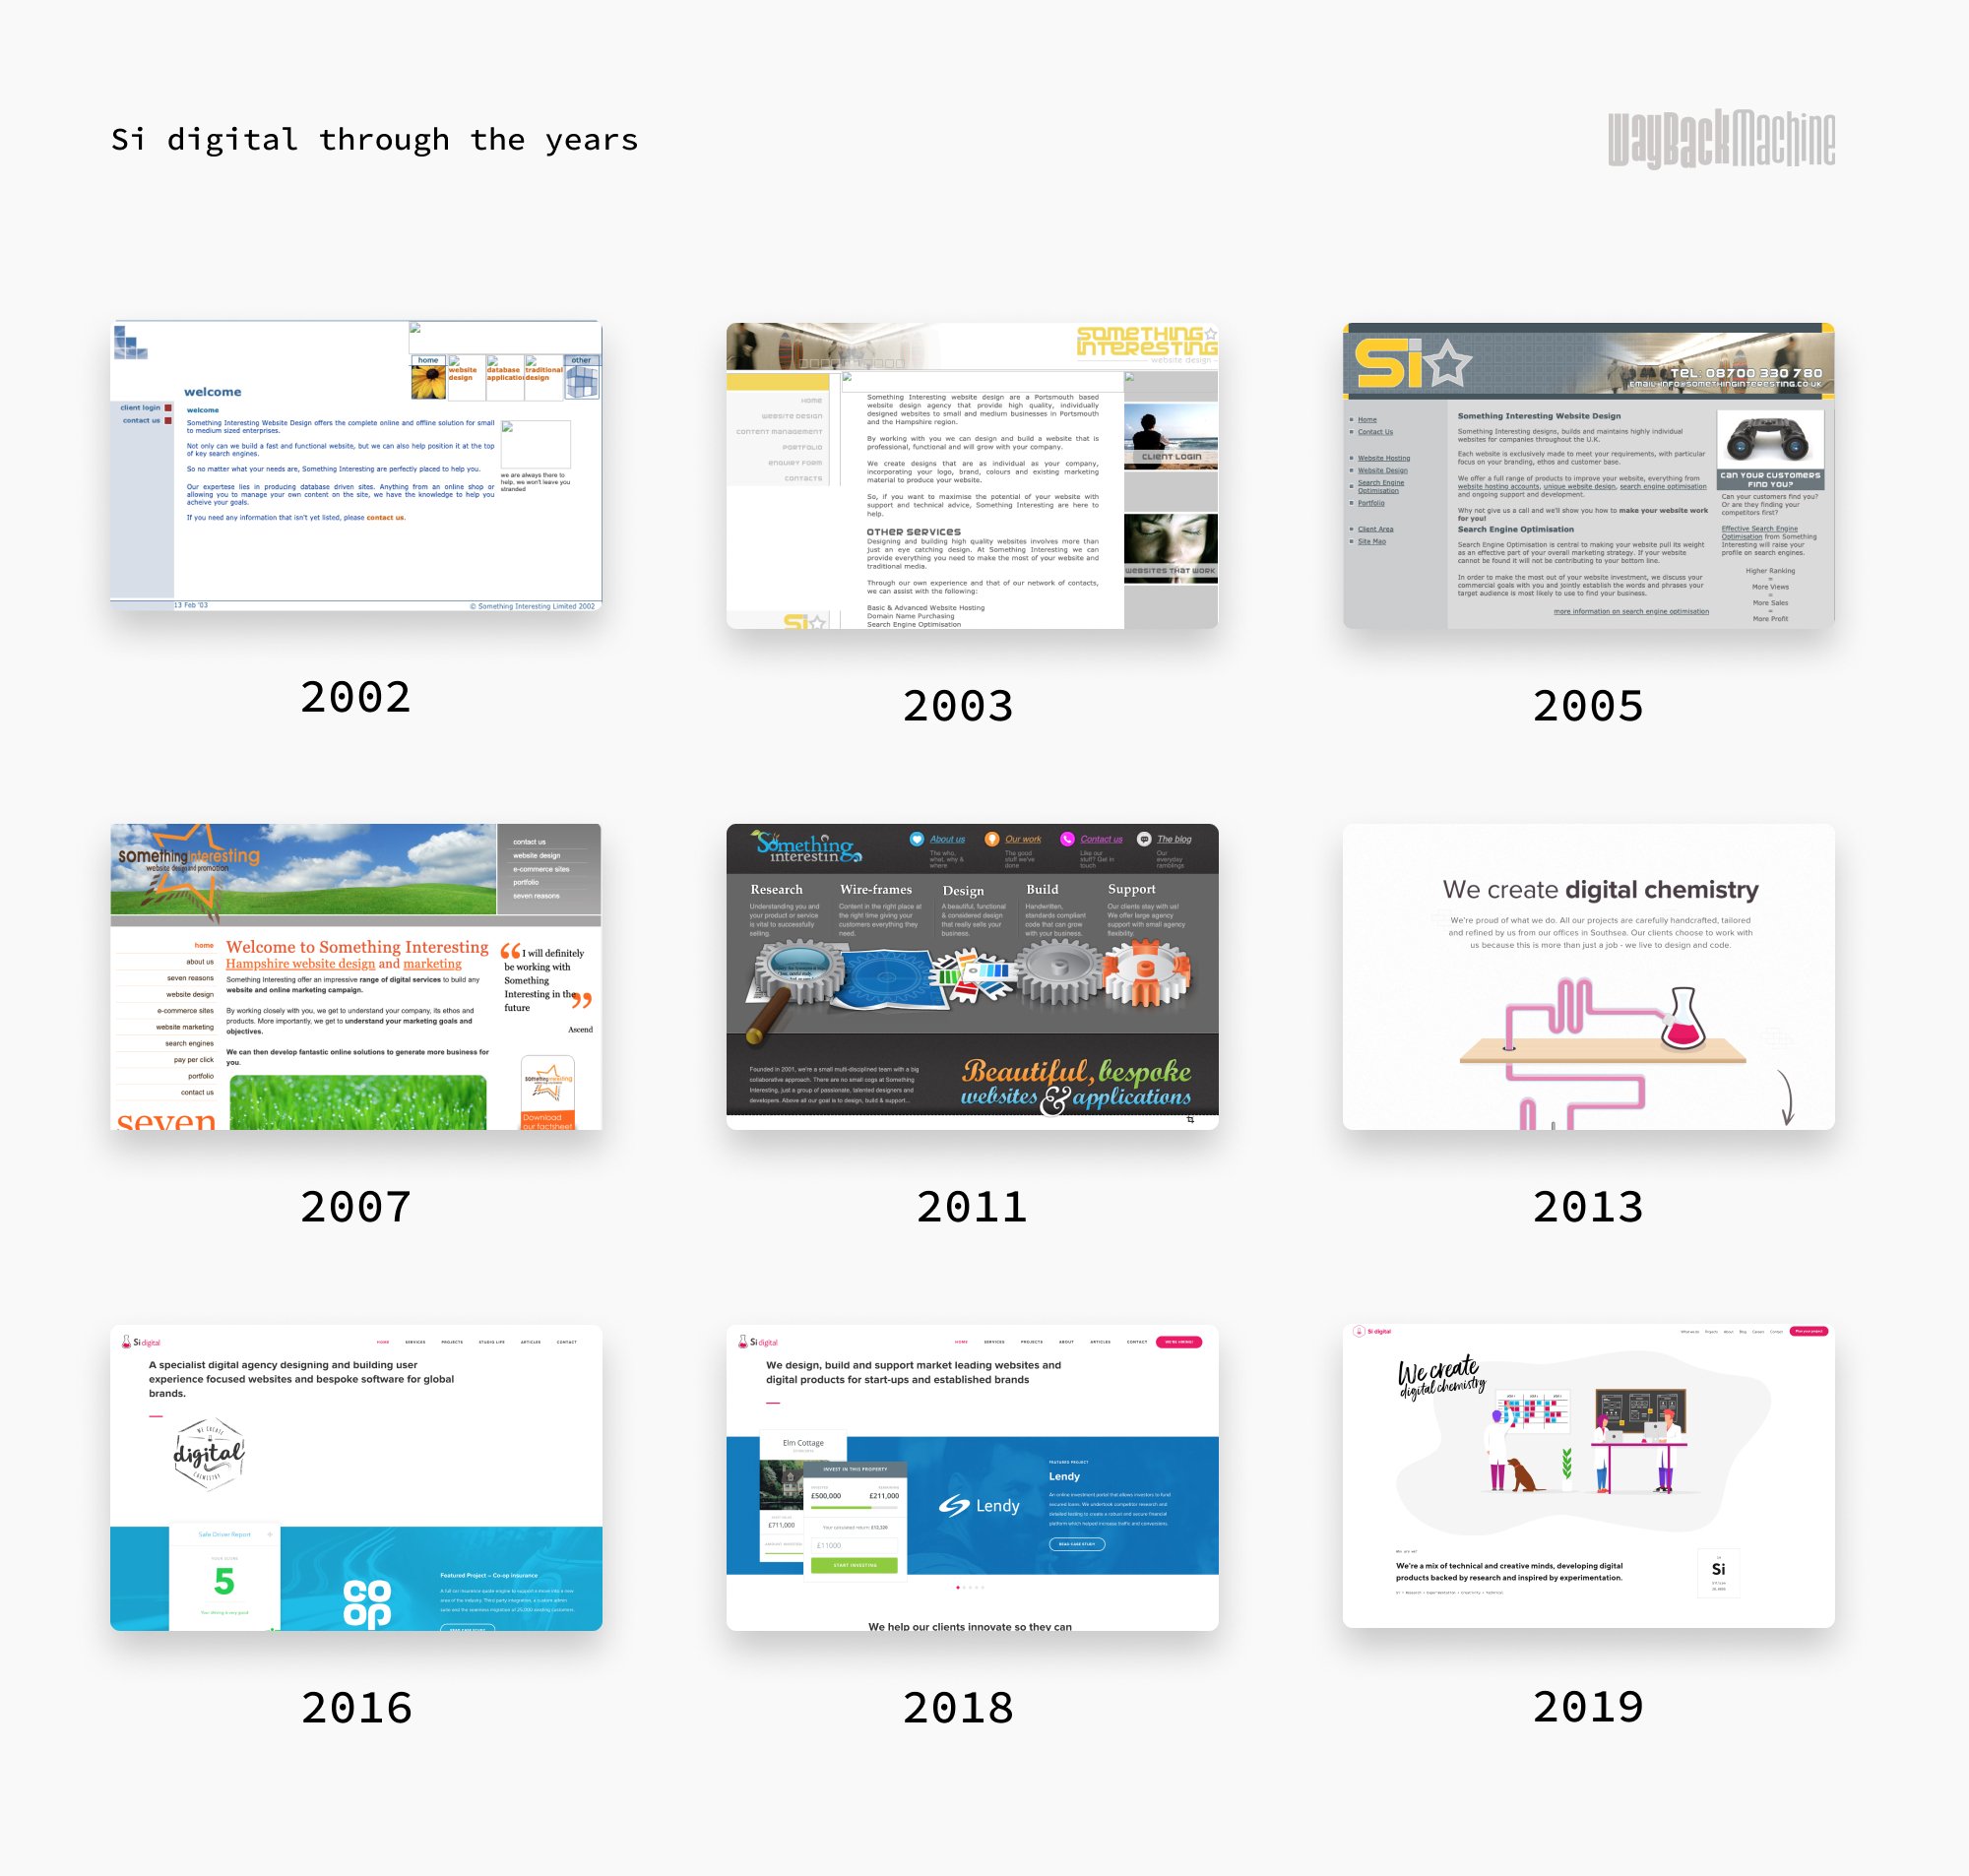 A timeline of the look of the Something Interesting/Si digital website